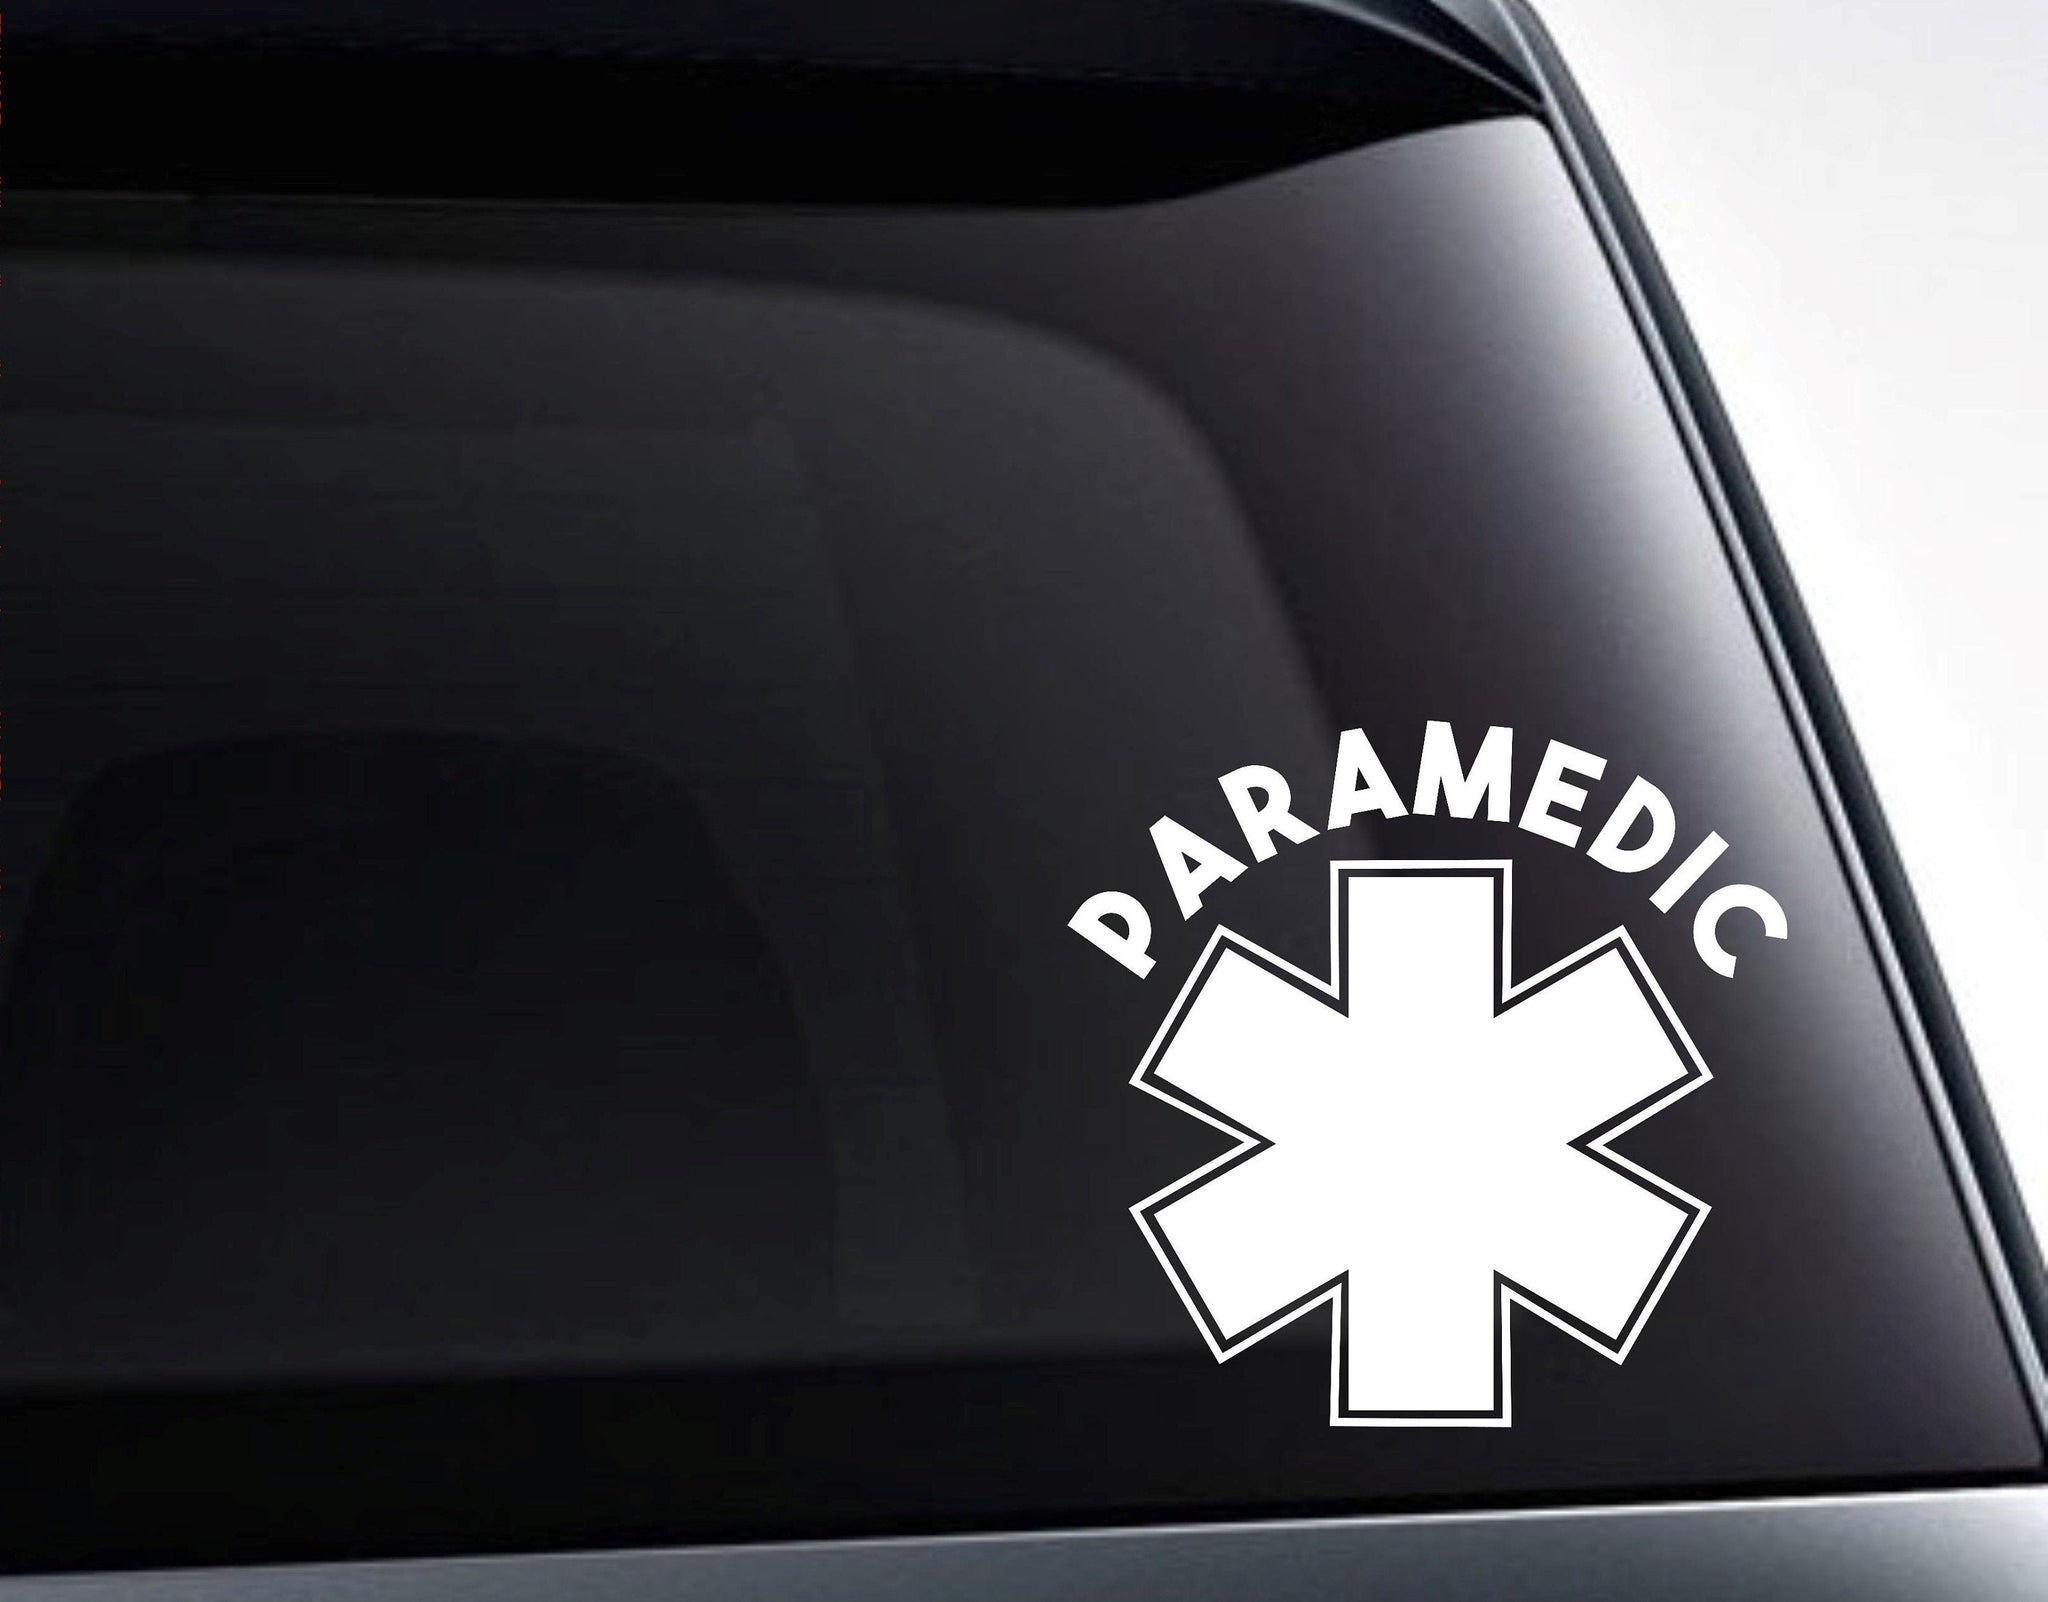 Paramedic Ambulance EMT Vinyl Decal Sticker